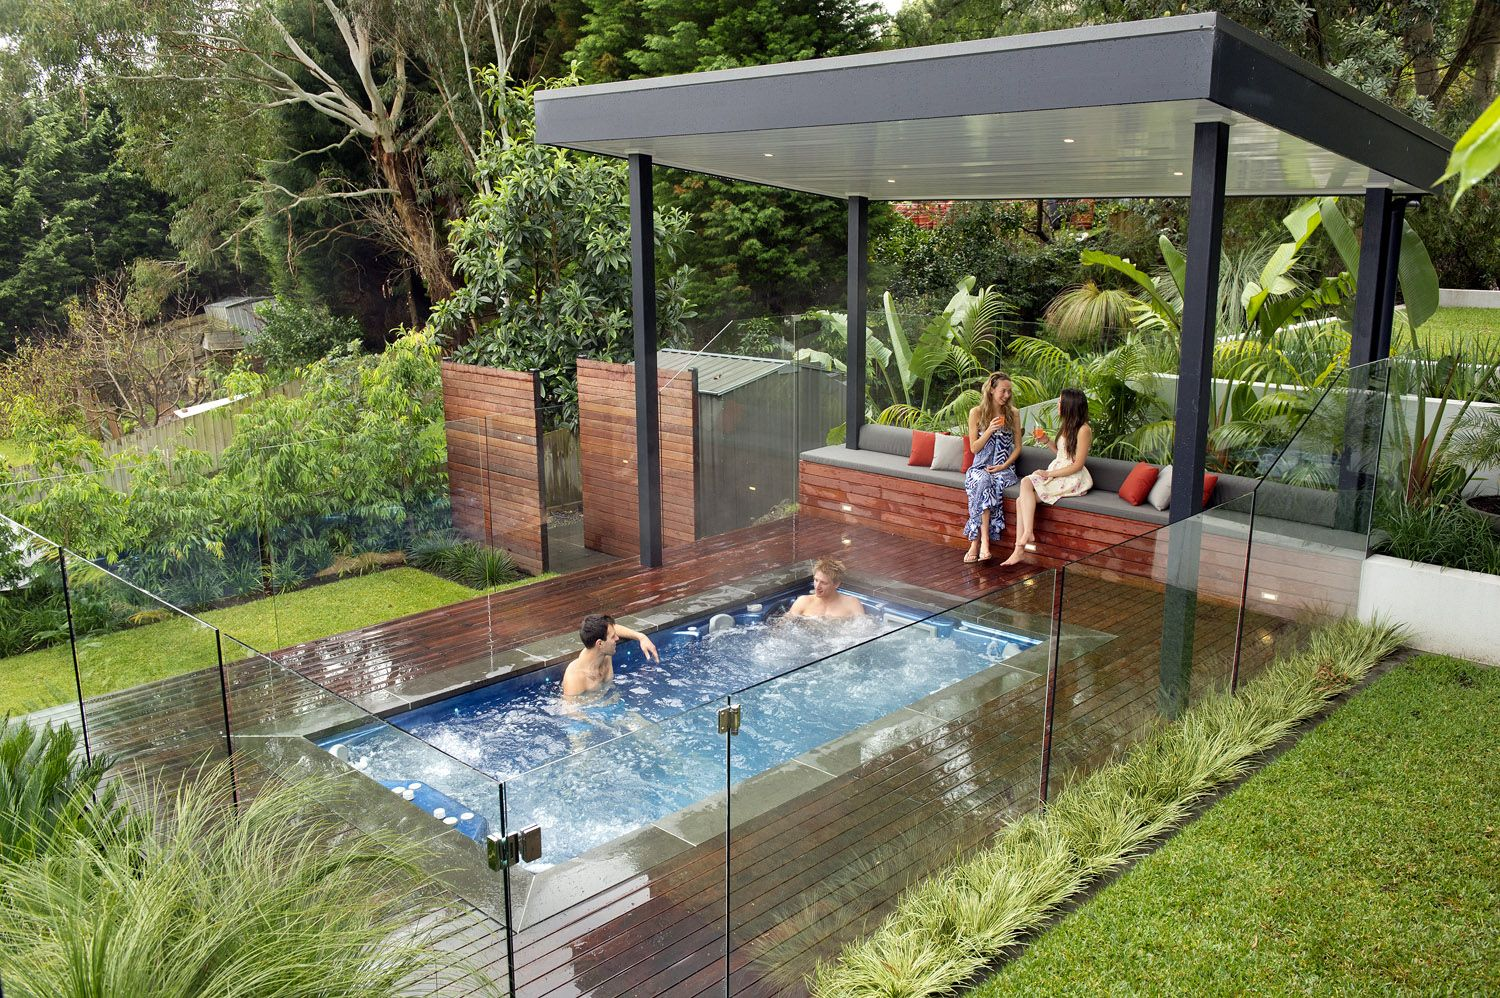 Pool Designs With Spa modern nice design of the outdoor spa landscaping ideas that has